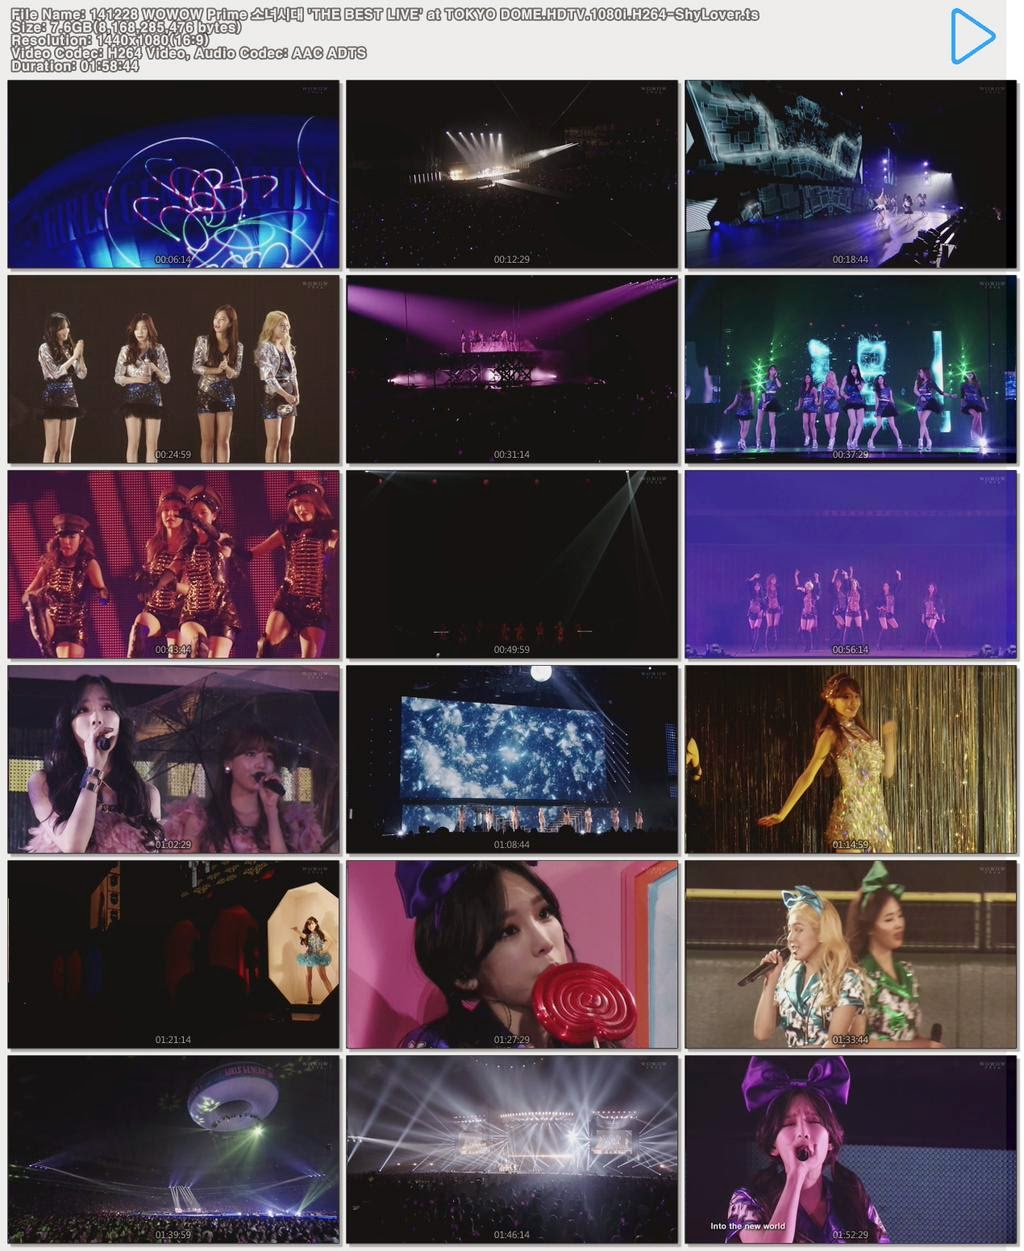 [Show] 141228 WOWOW SNSD THE BEST LIVE at TokyoDome